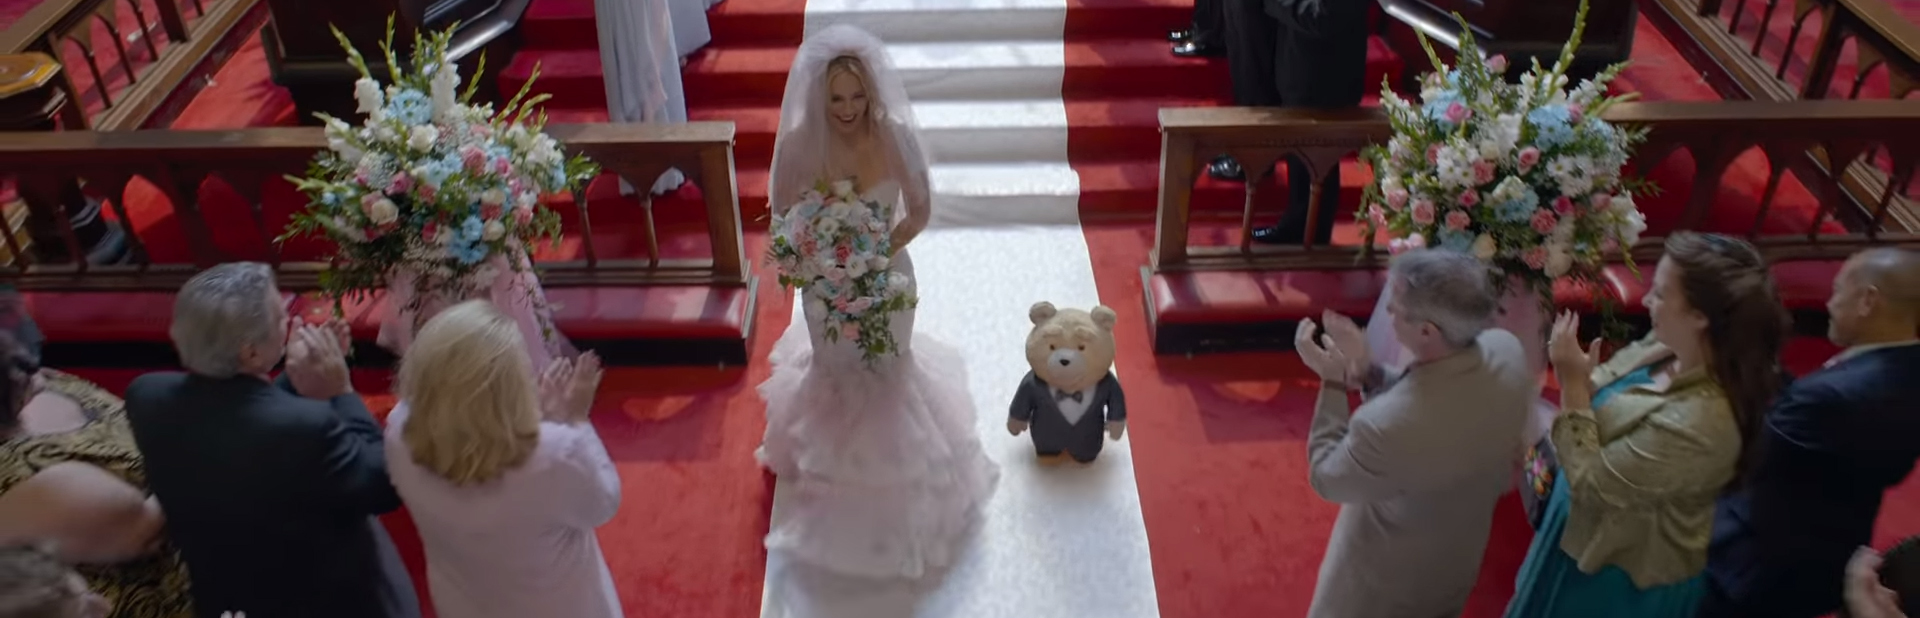 Ted 2. Image Credit: Universal Pictures.